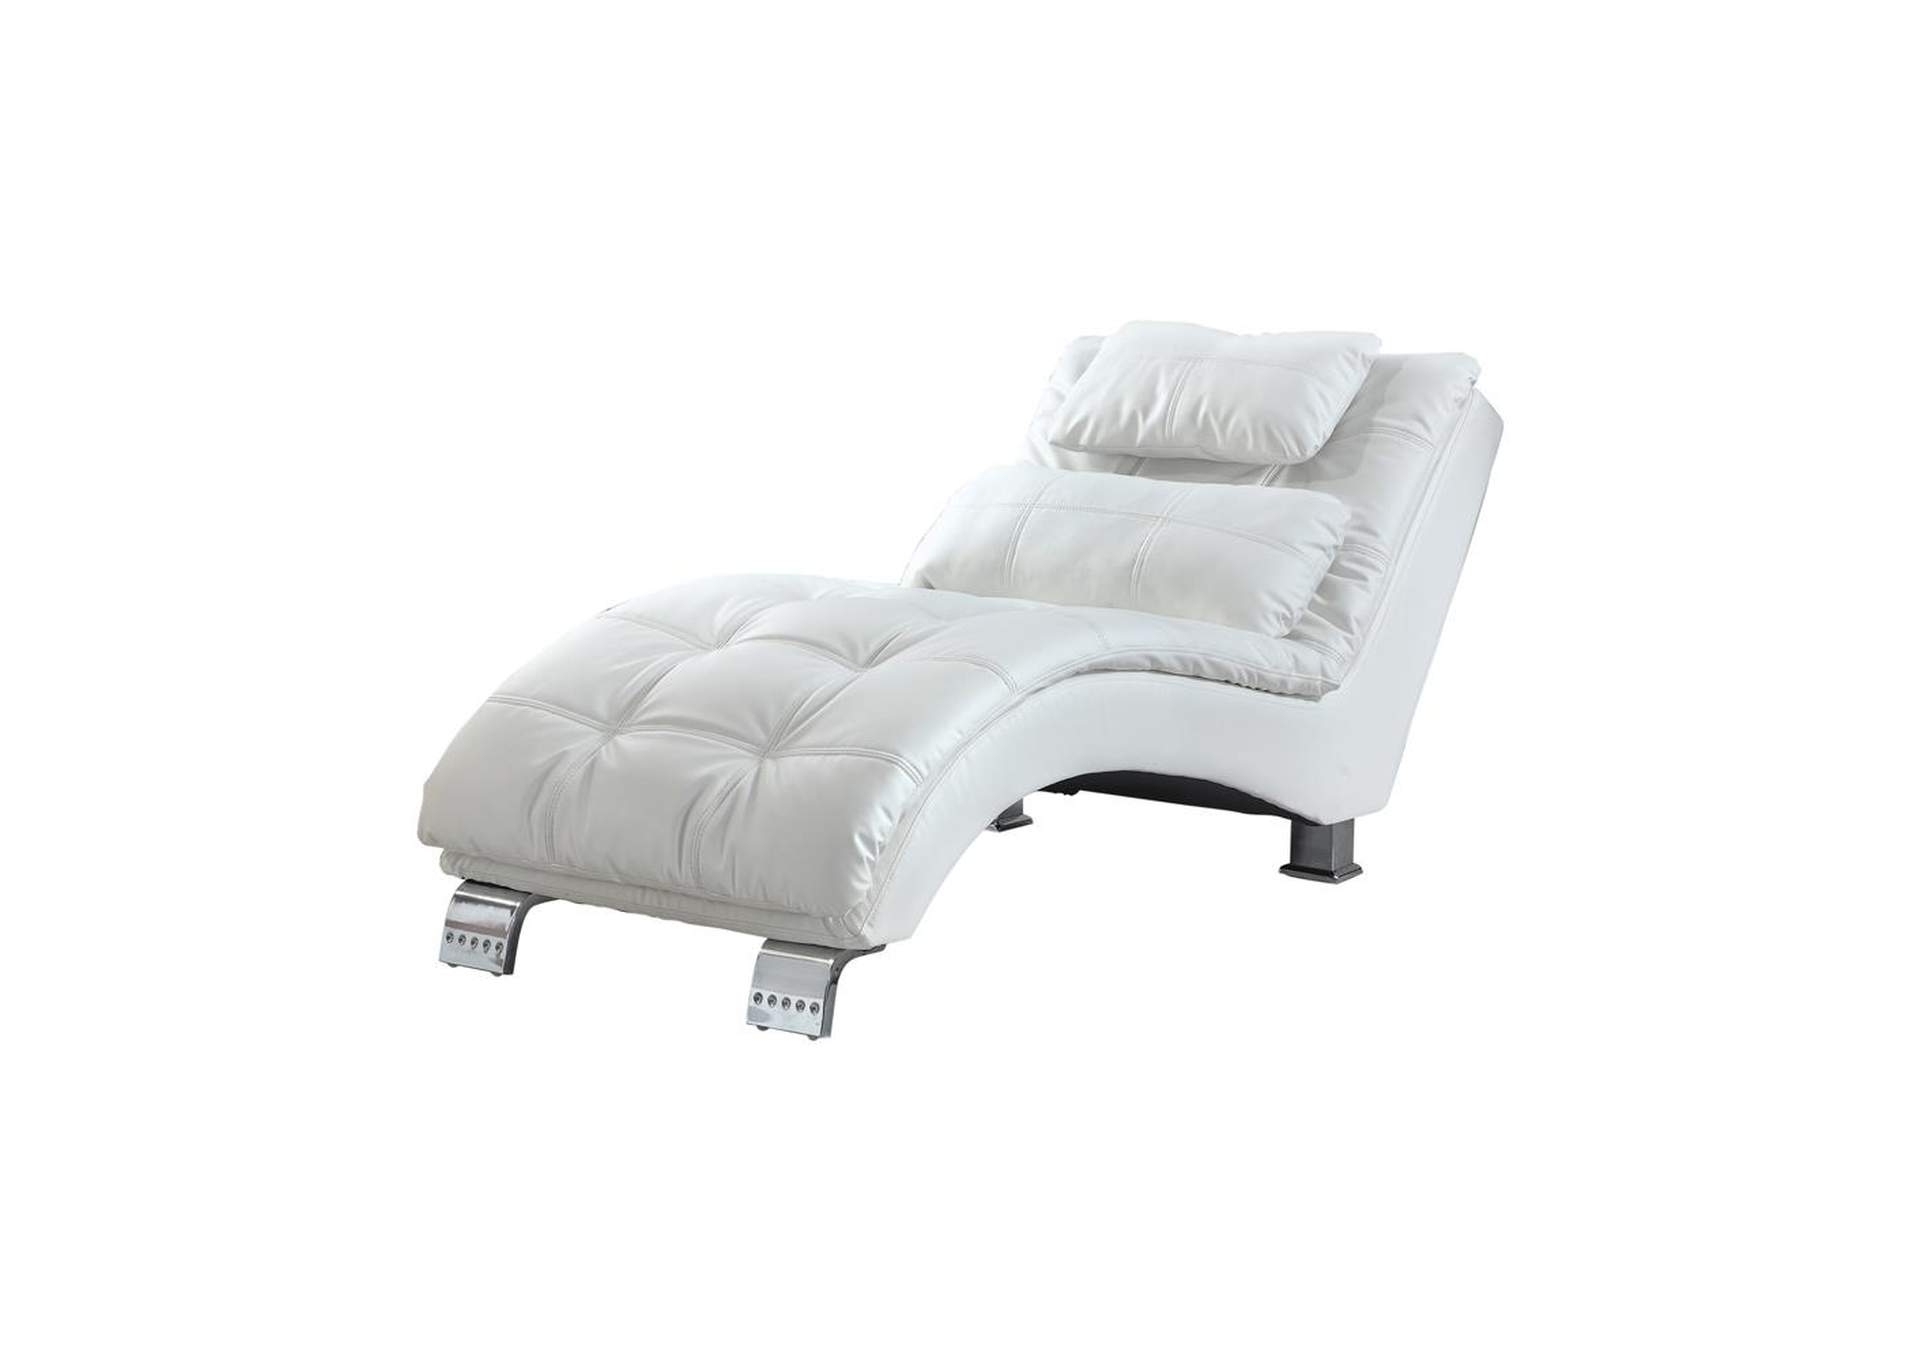 Chrome Dilleston Contemporary White Chaise,Coaster Furniture